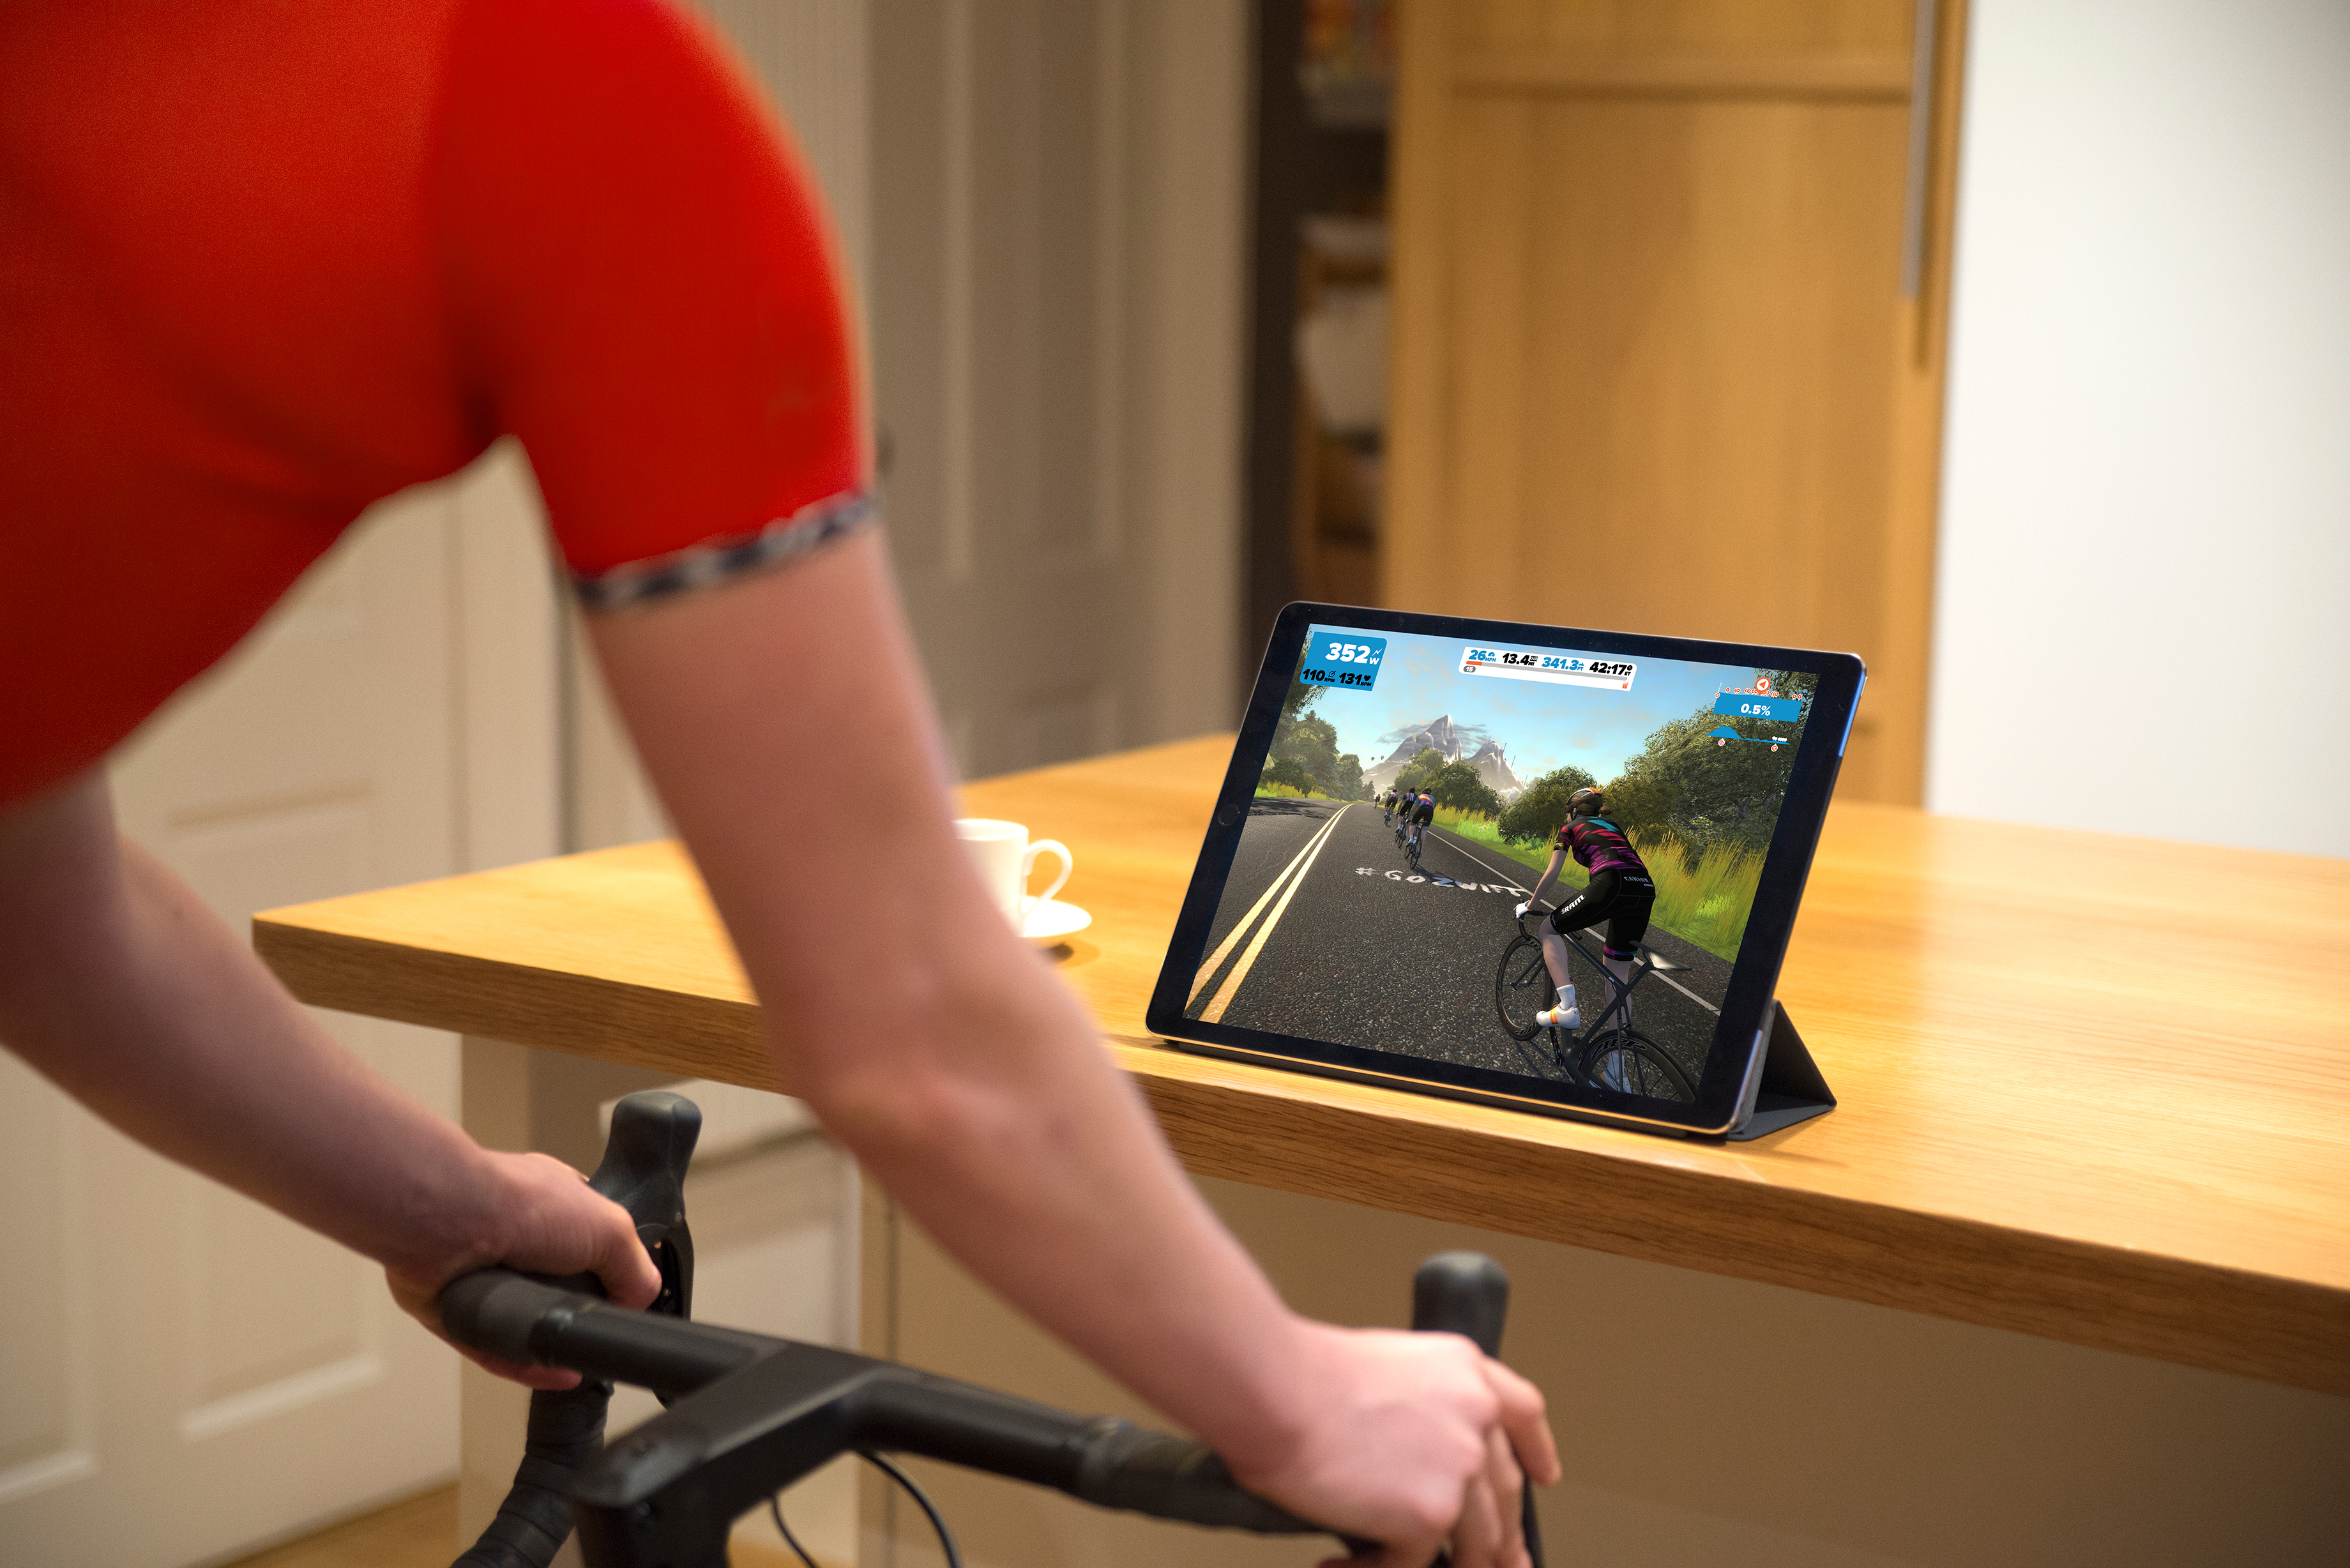 Cycling (bikes) and MMOs